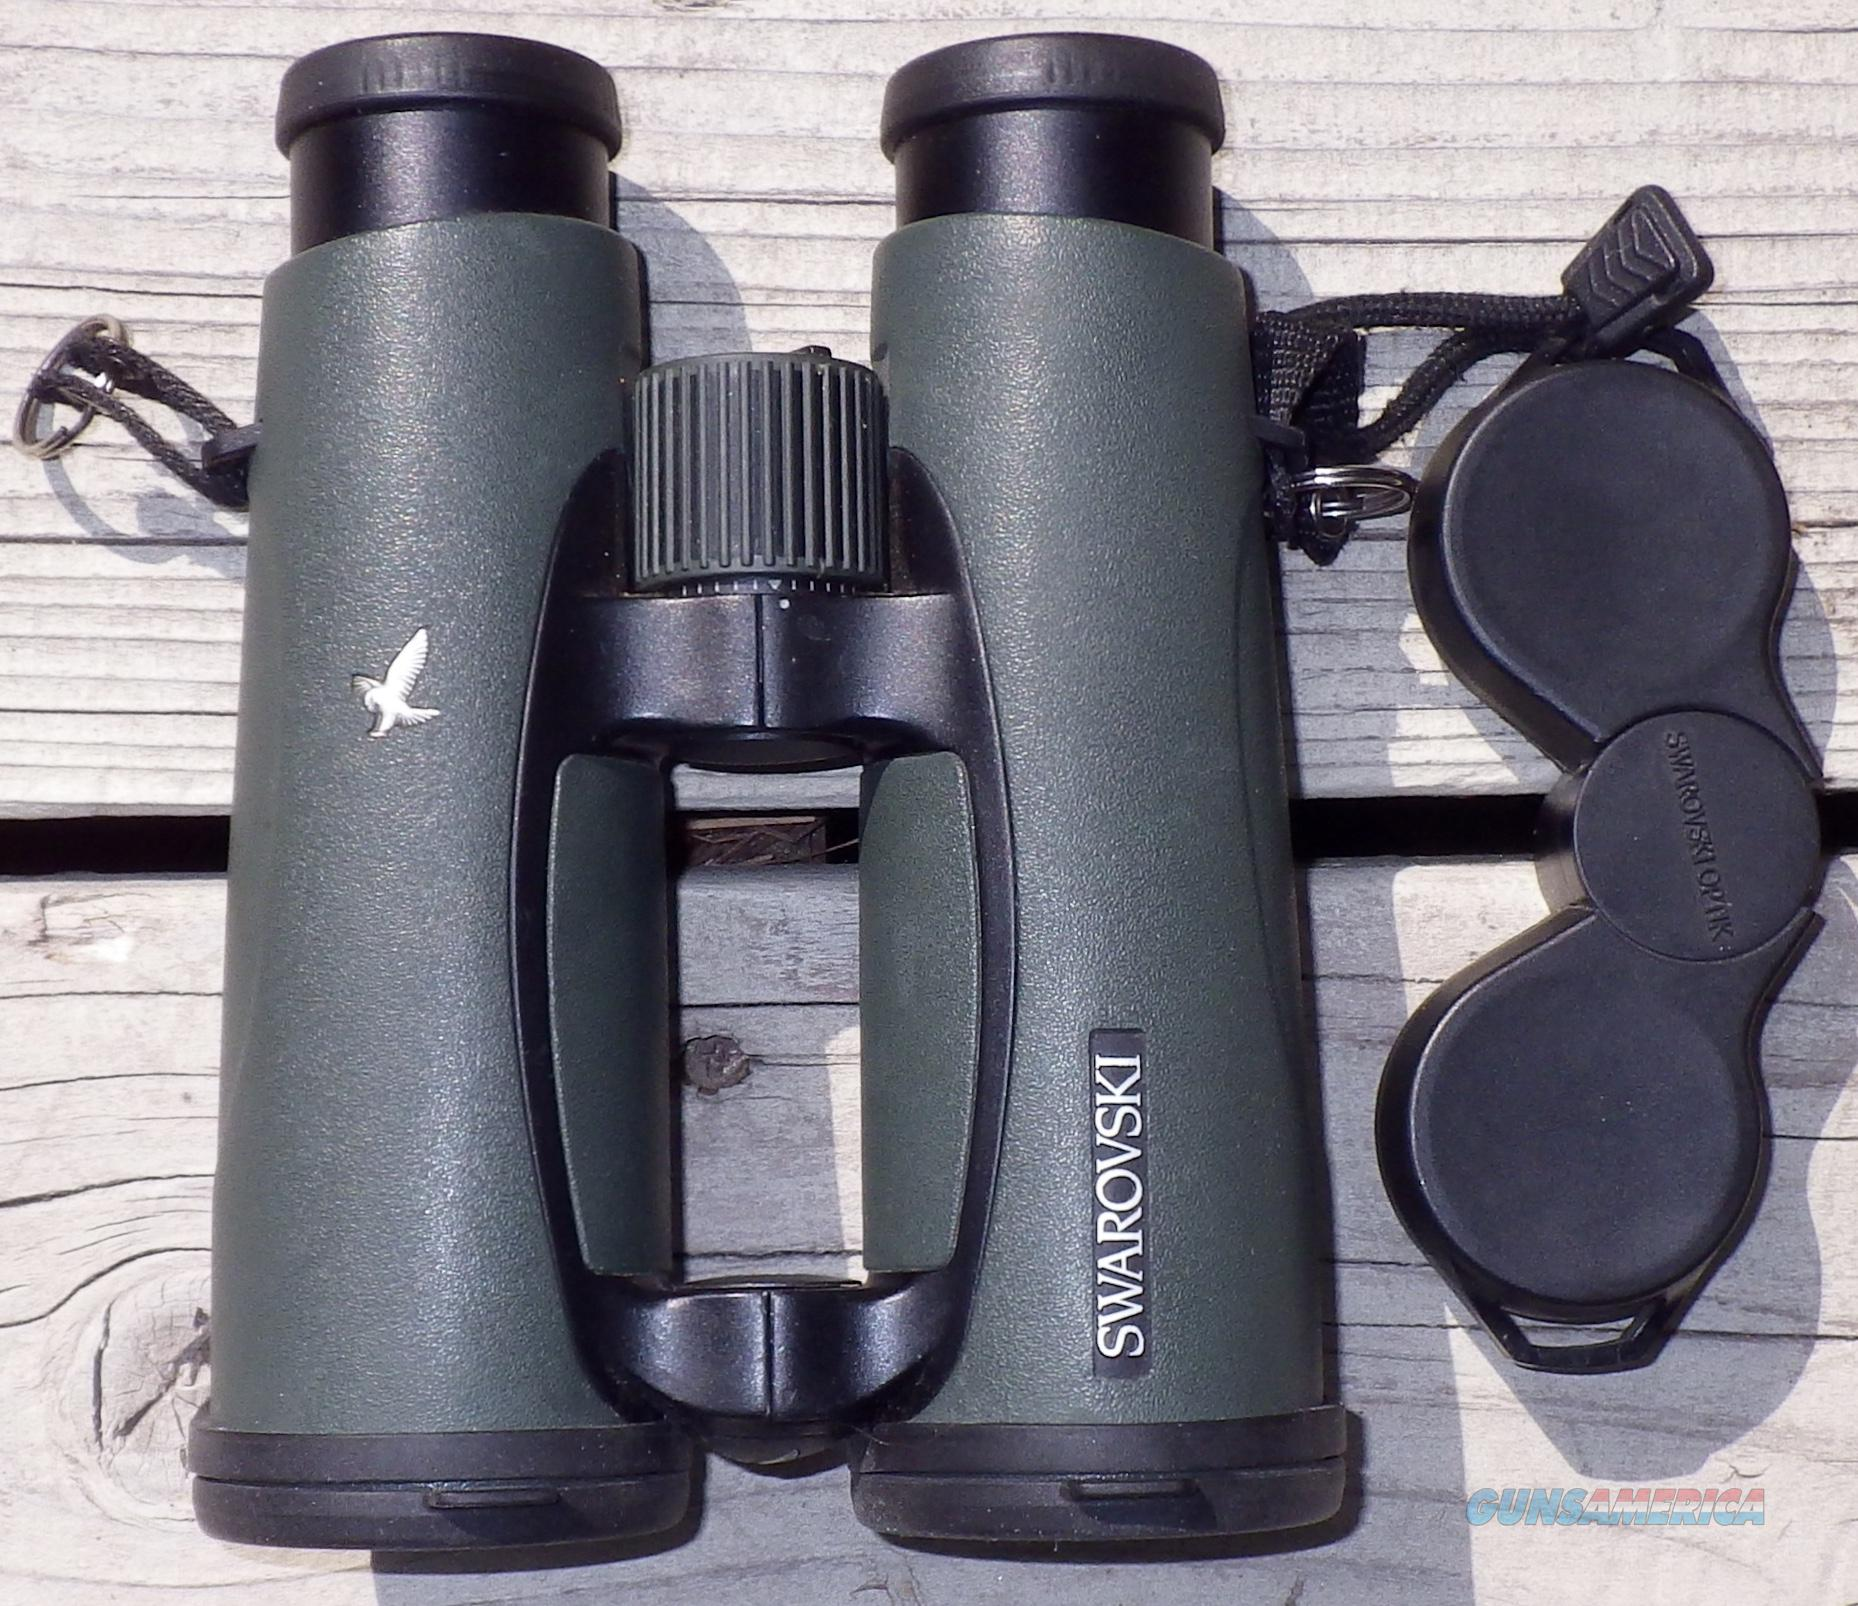 Swarovski 10x42 EL binoculars, Swarovision  Non-Guns > Scopes/Mounts/Rings & Optics > Non-Scope Optics > Binoculars